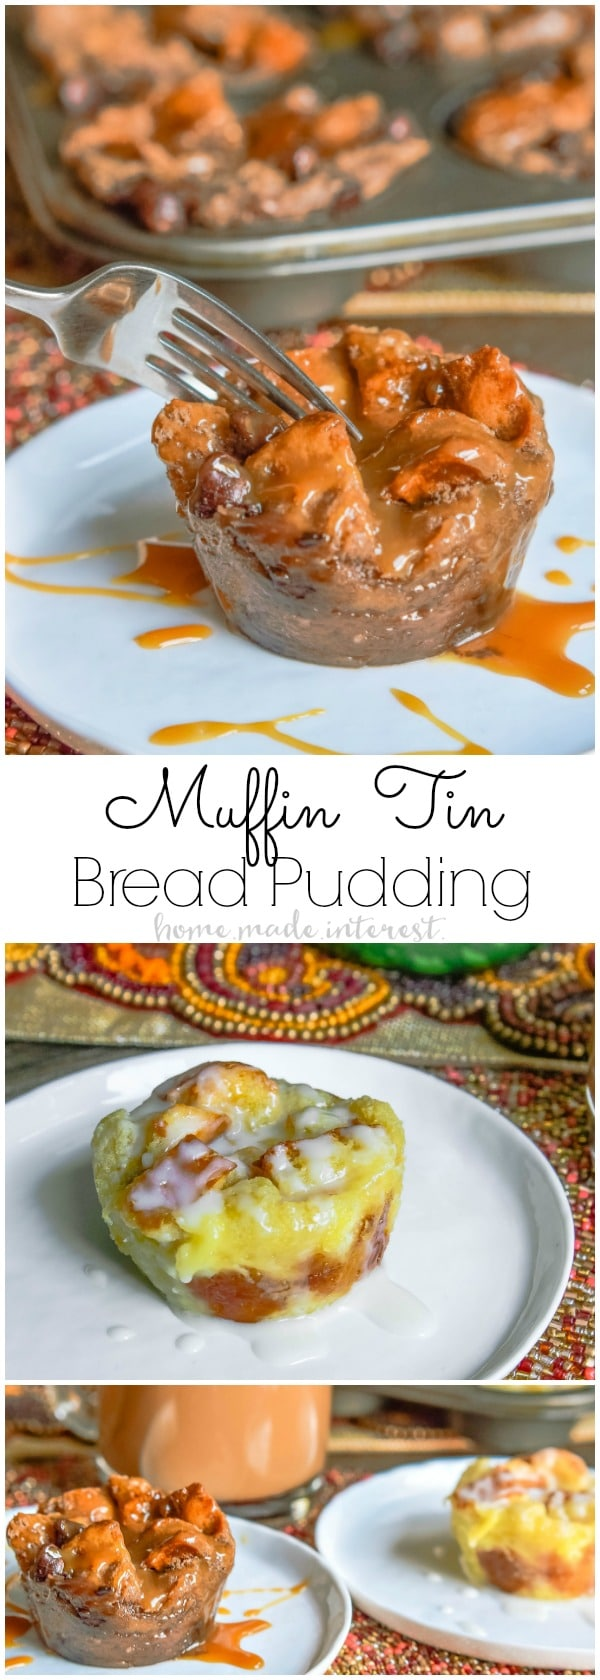 This muffin tin bread pudding is an easy bread pudding recipe that makes individual servings! These are perfect for Thanksgiving dessert or Christmas dessert because you can make multiple flavors in one muffin tin. I've made two of my favorite flavors Sugar Cookie Bread Pudding and Caramel Mocha Bread Pudding. Both are amazing!